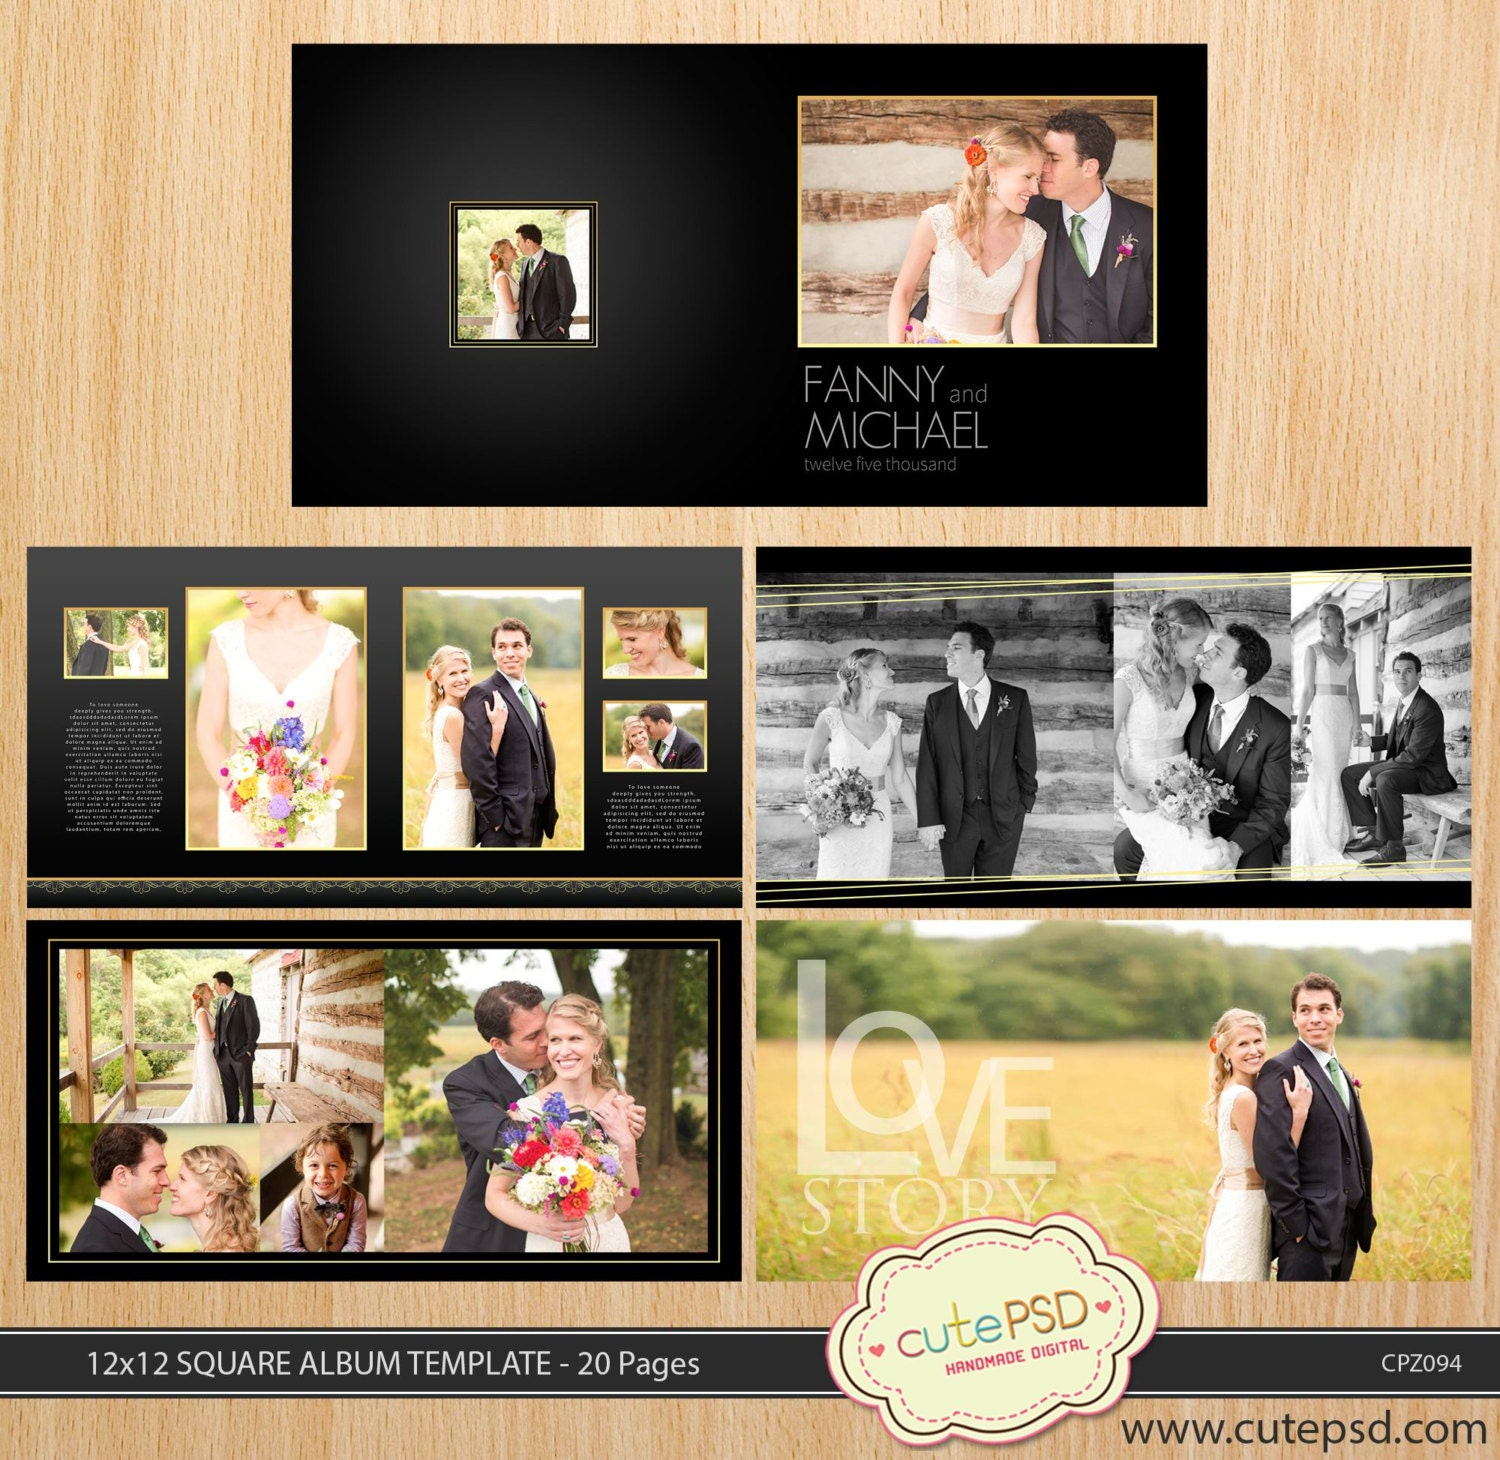 12x12 Square wedding album template 20 pages Dark Gold